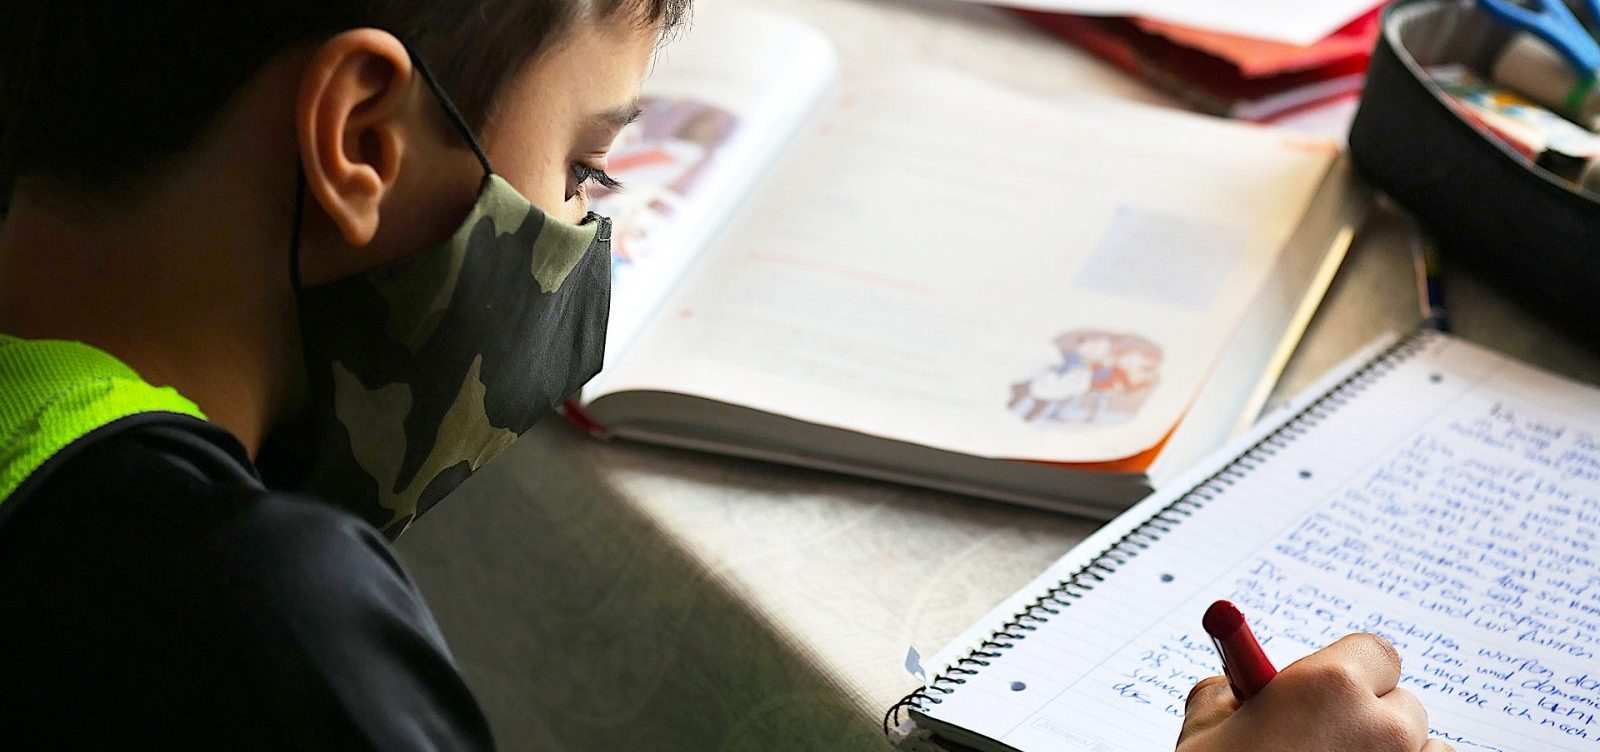 Getting Back on Track: DOE Announces Academic Recovery Plan for NYC Schools